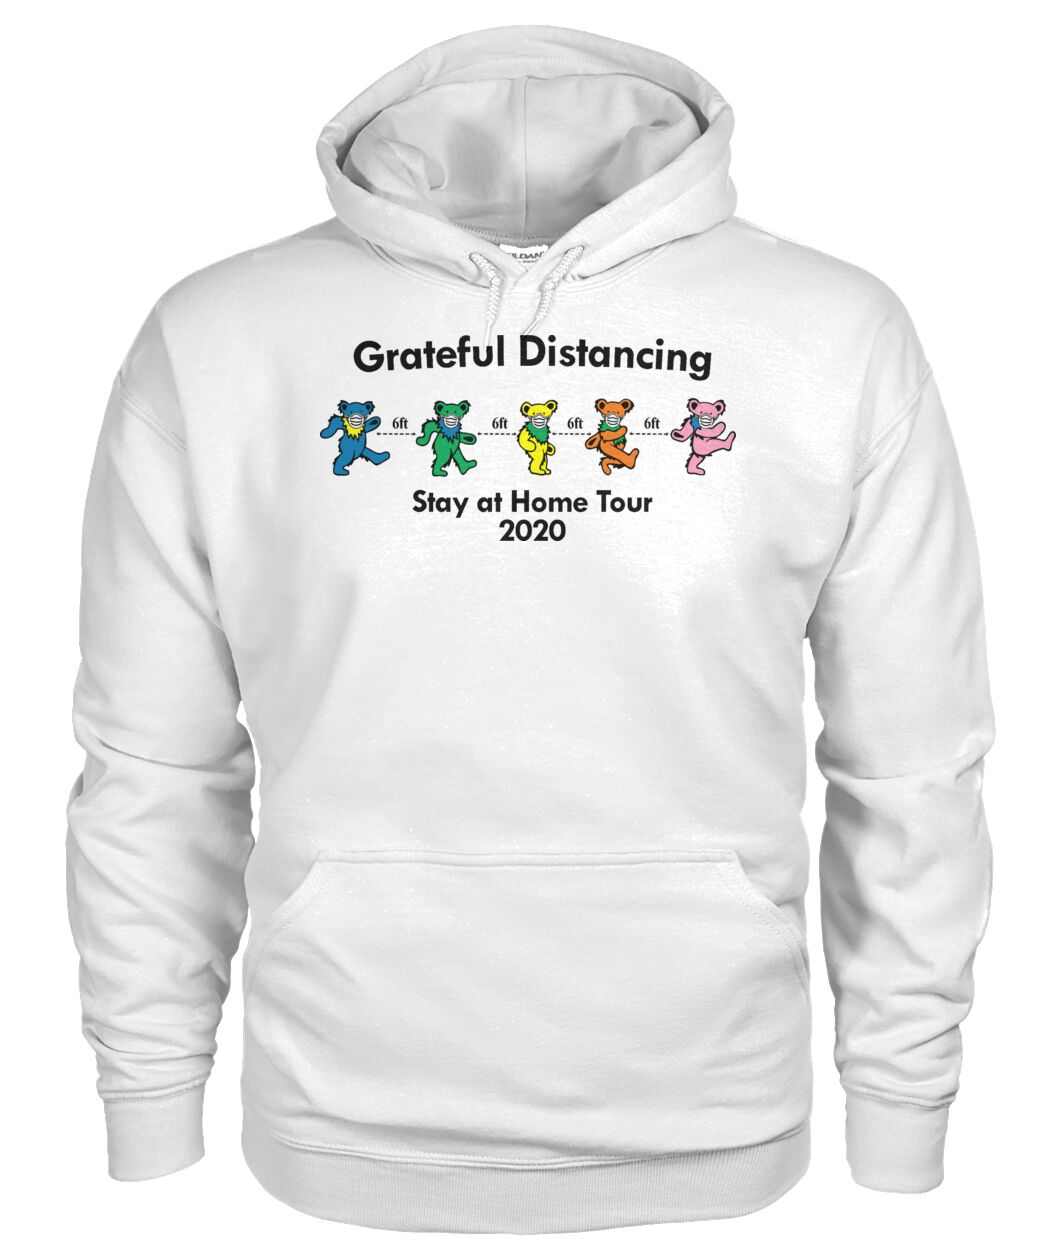 Grateful Distancing Stay at home tour 2020 hoodie